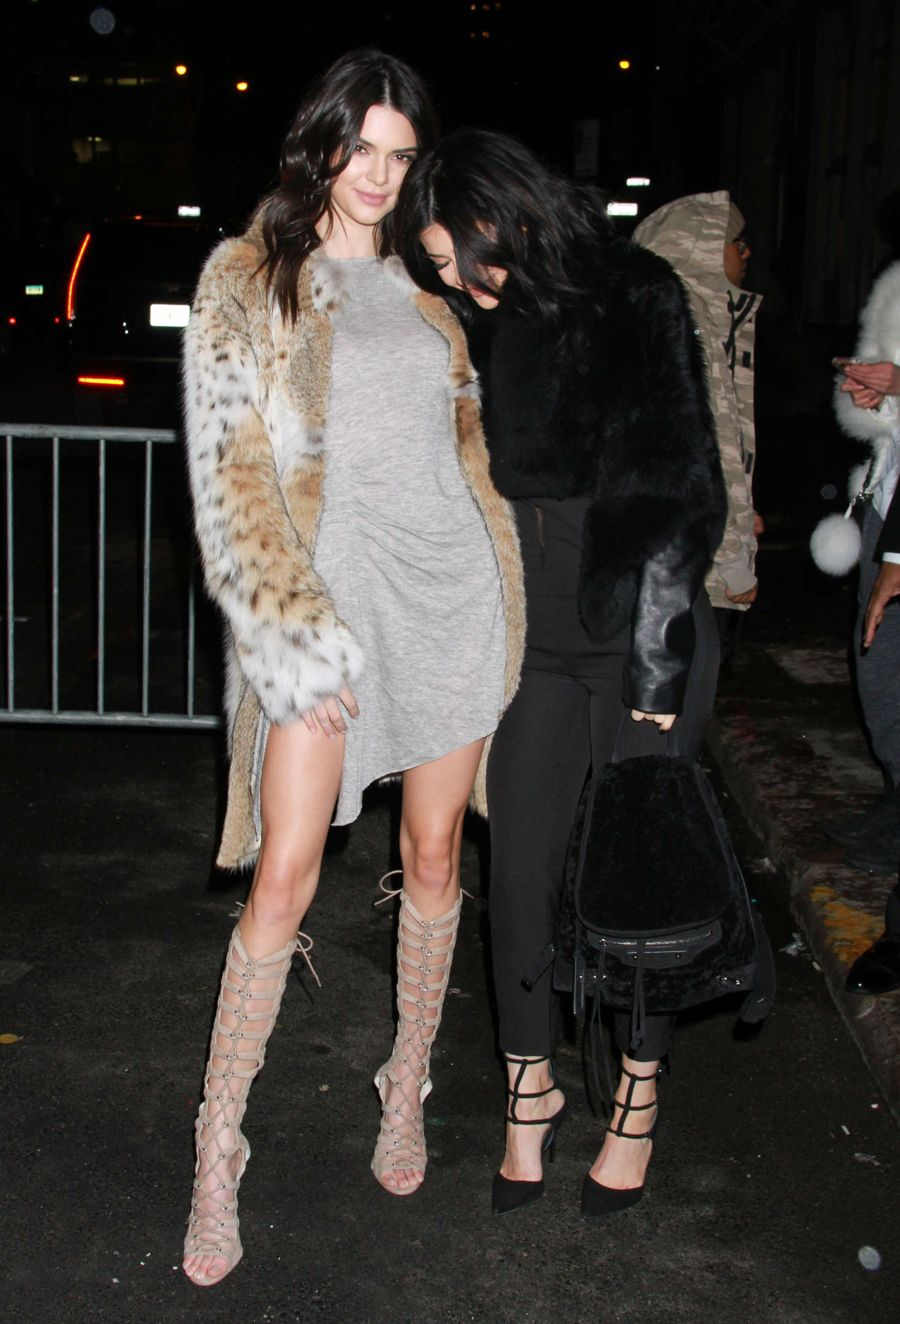 Kendall and Kylie Jenner at 2016 Collection Launch Party